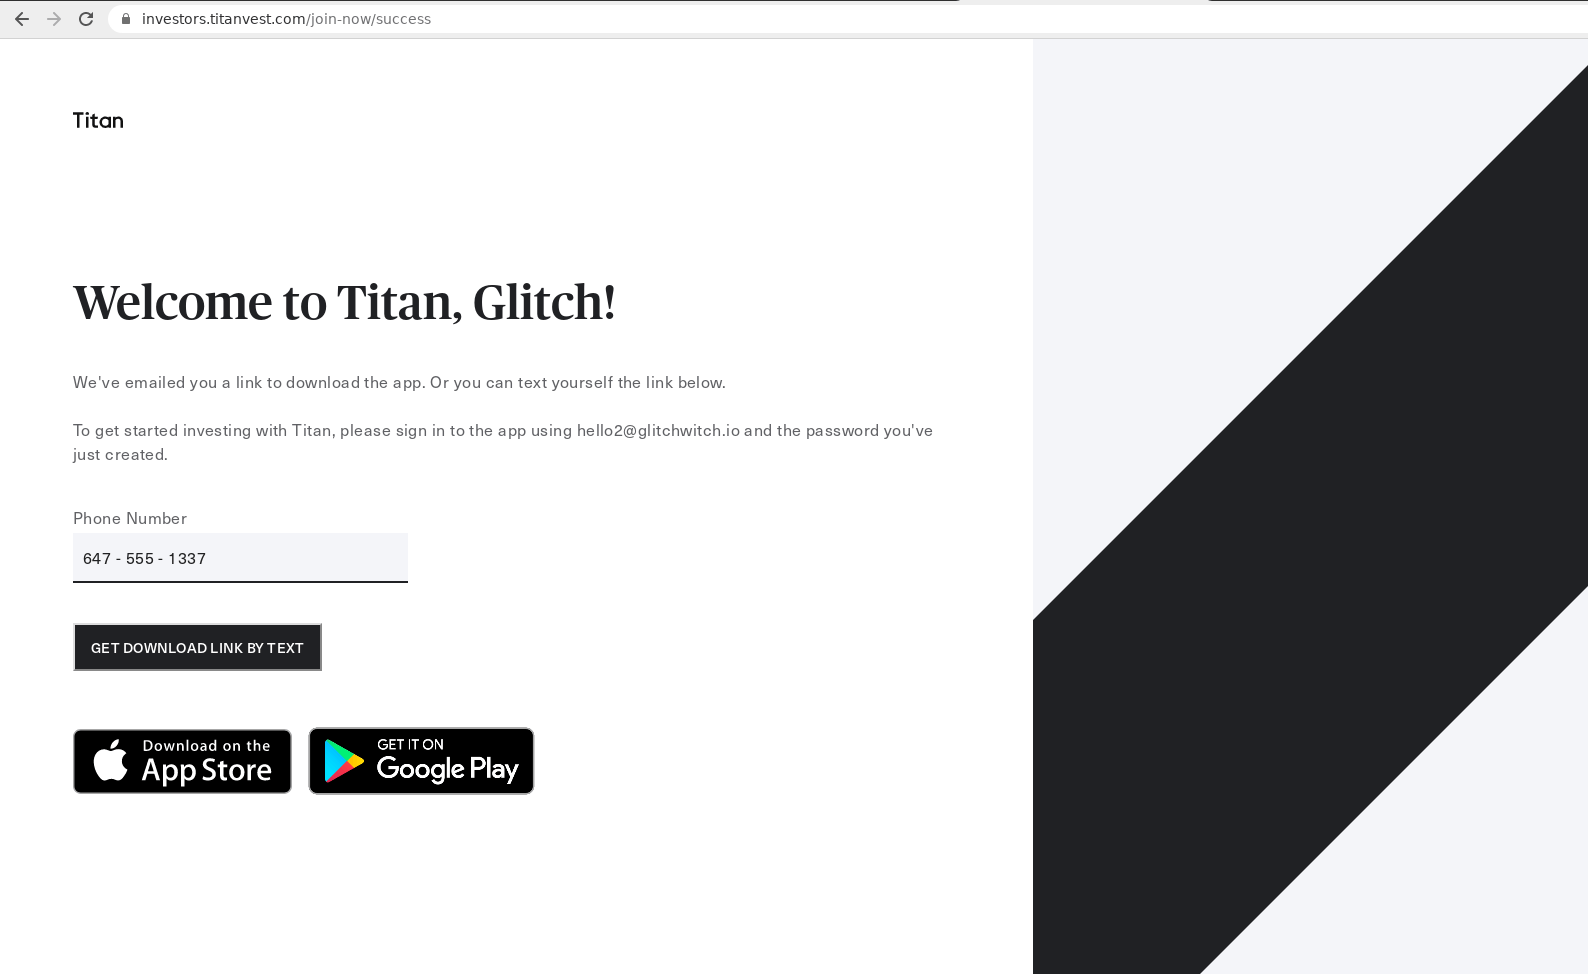 Screenshot of titanvest.com/join-now/success